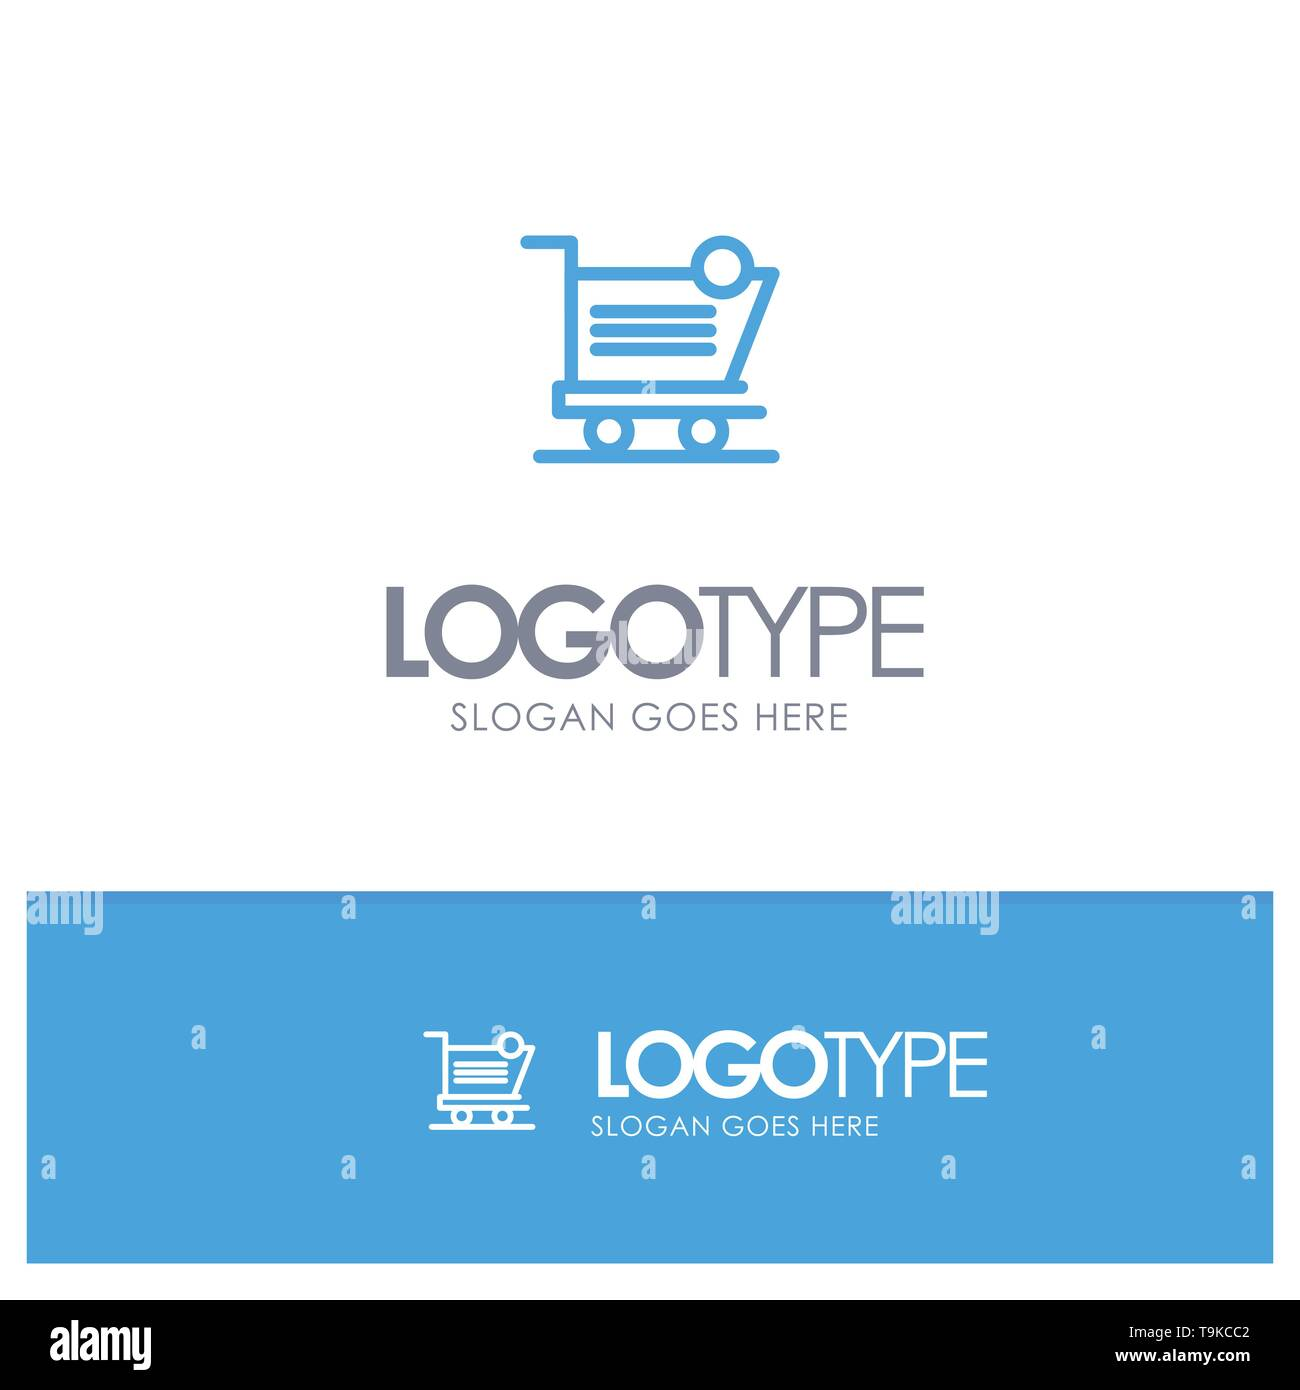 Cart, Shopping, Shipping, Item, Store Blue outLine Logo with place for tagline - Stock Image